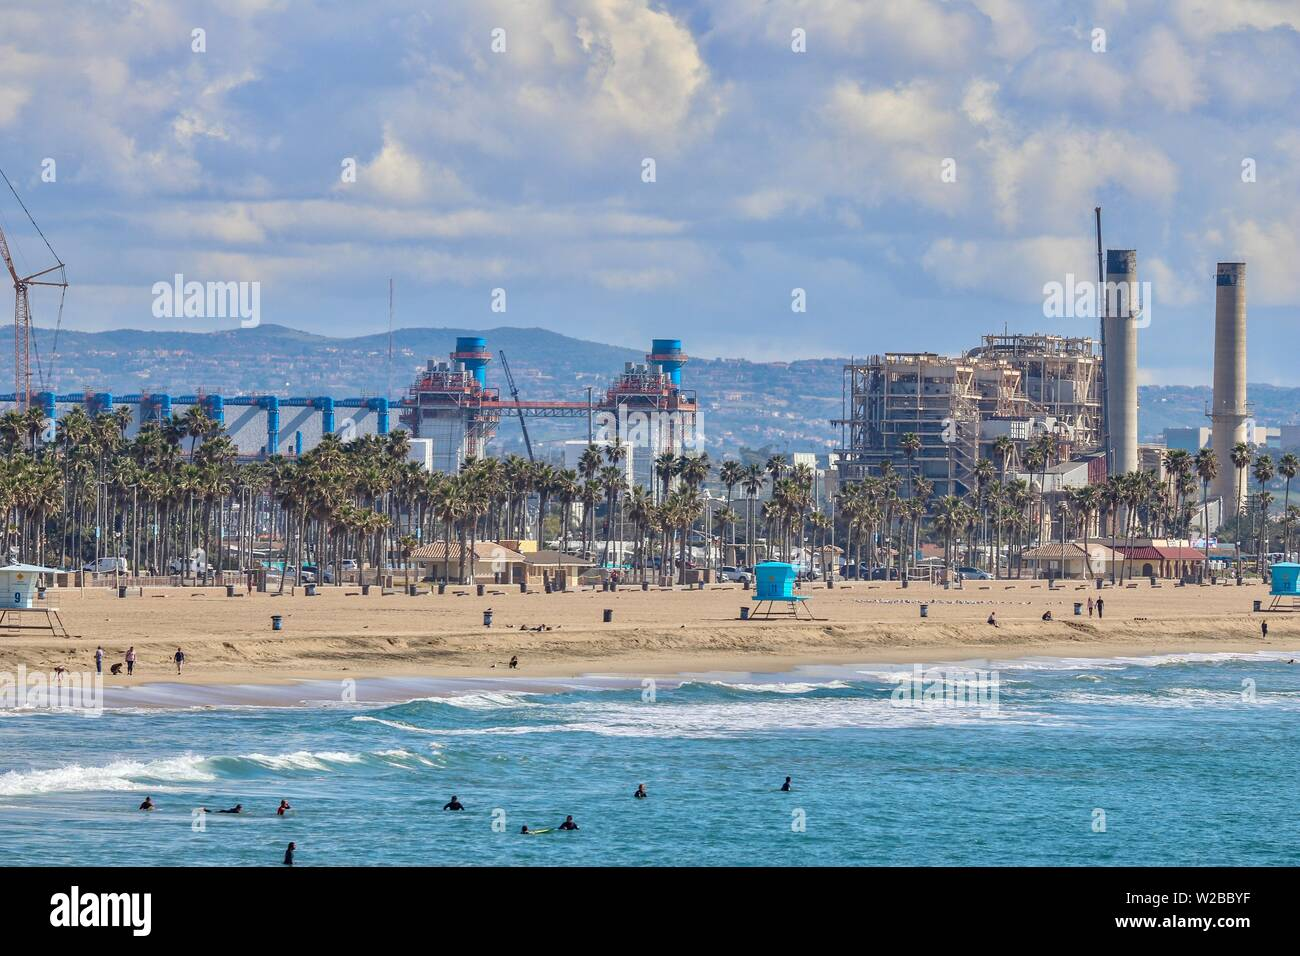 Huntington Beach Coastline showing the AES Plant and the water desalinization plant - Stock Image